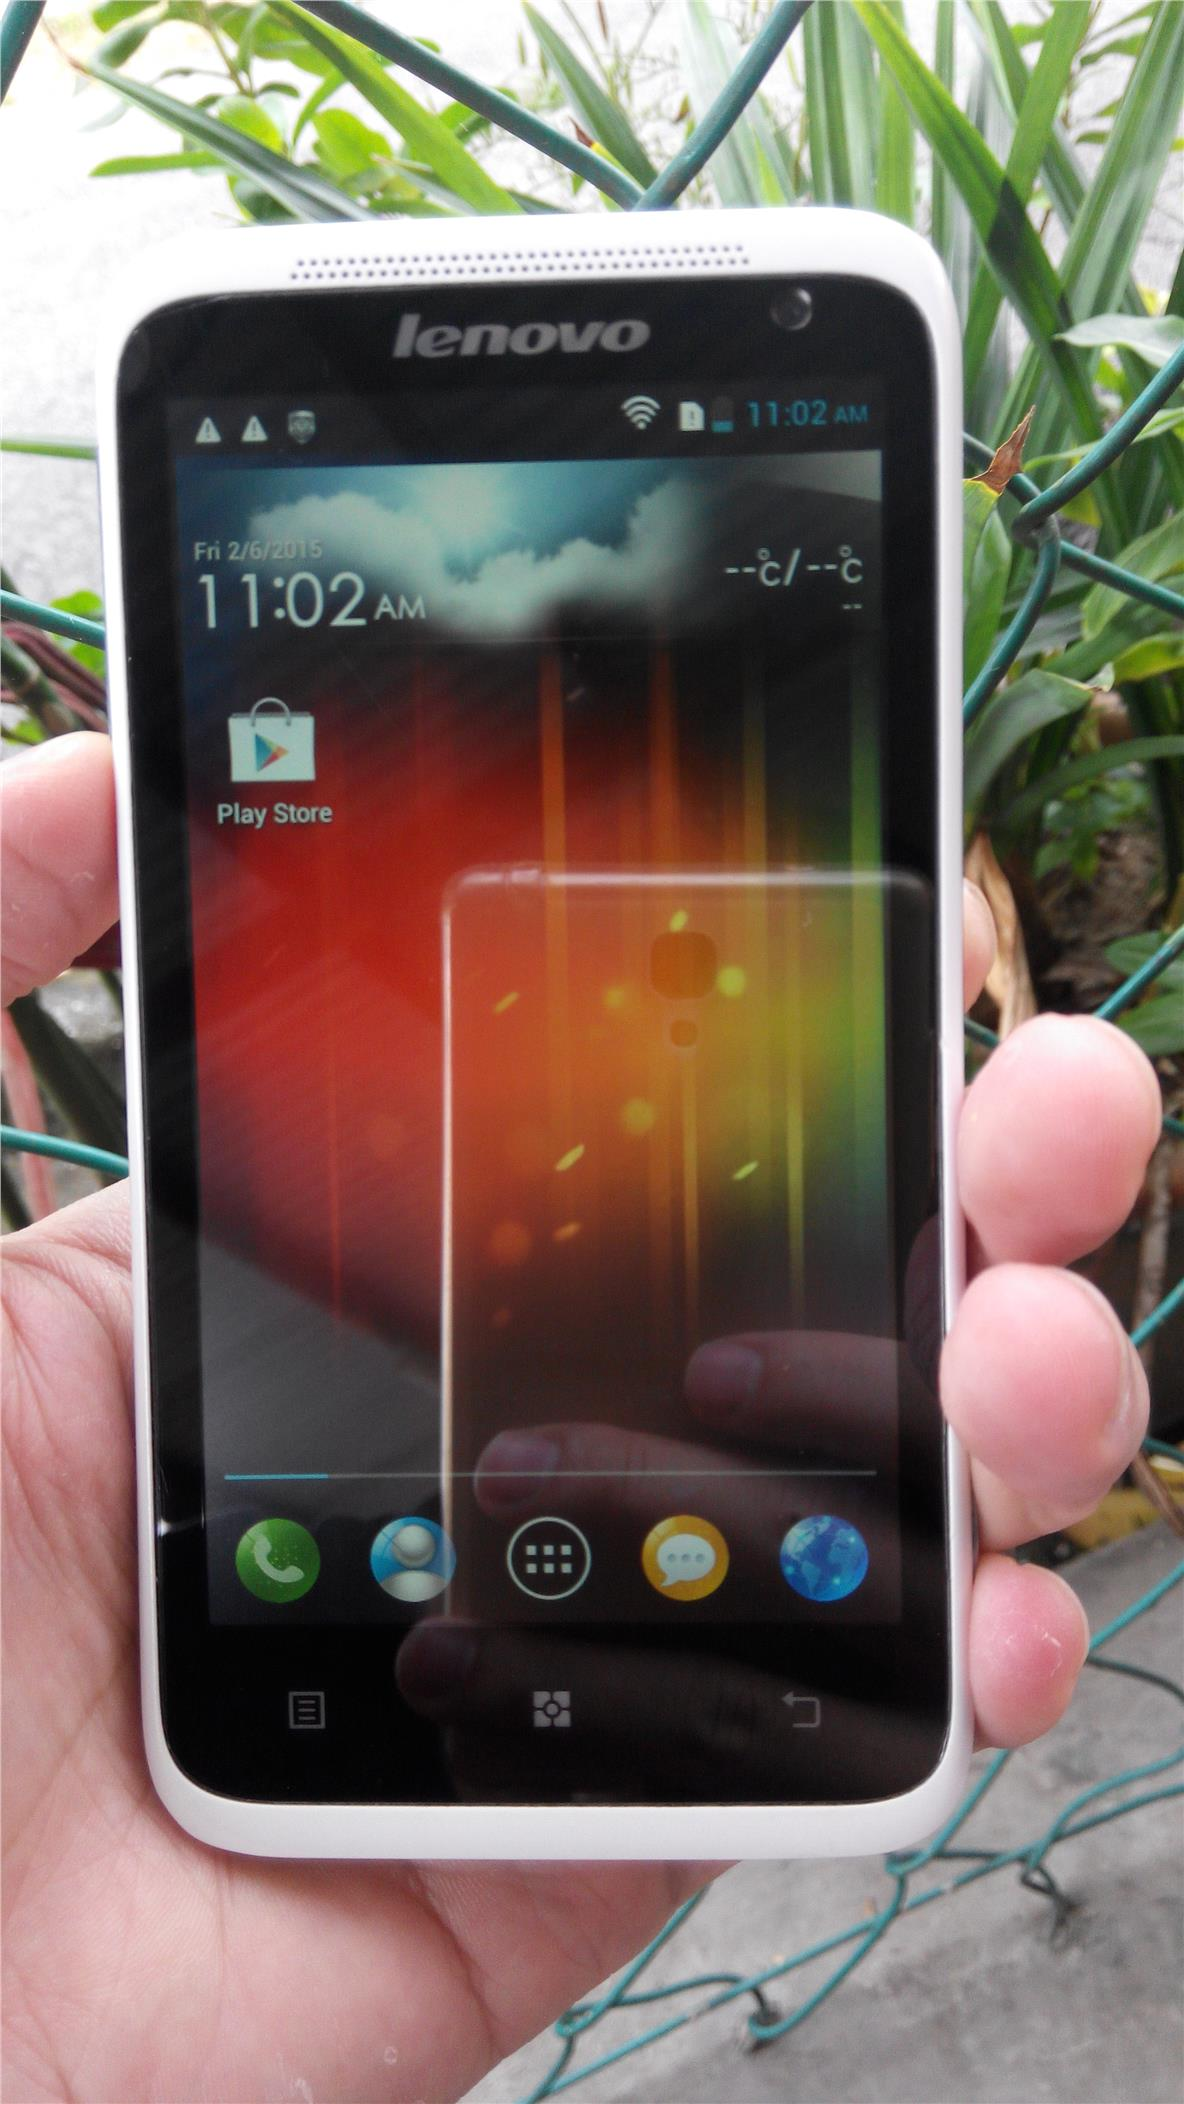 Phone Second Hand Android Phones second hand phonelenovo s72063g4 end 282016 1115 am 5android 4 0like